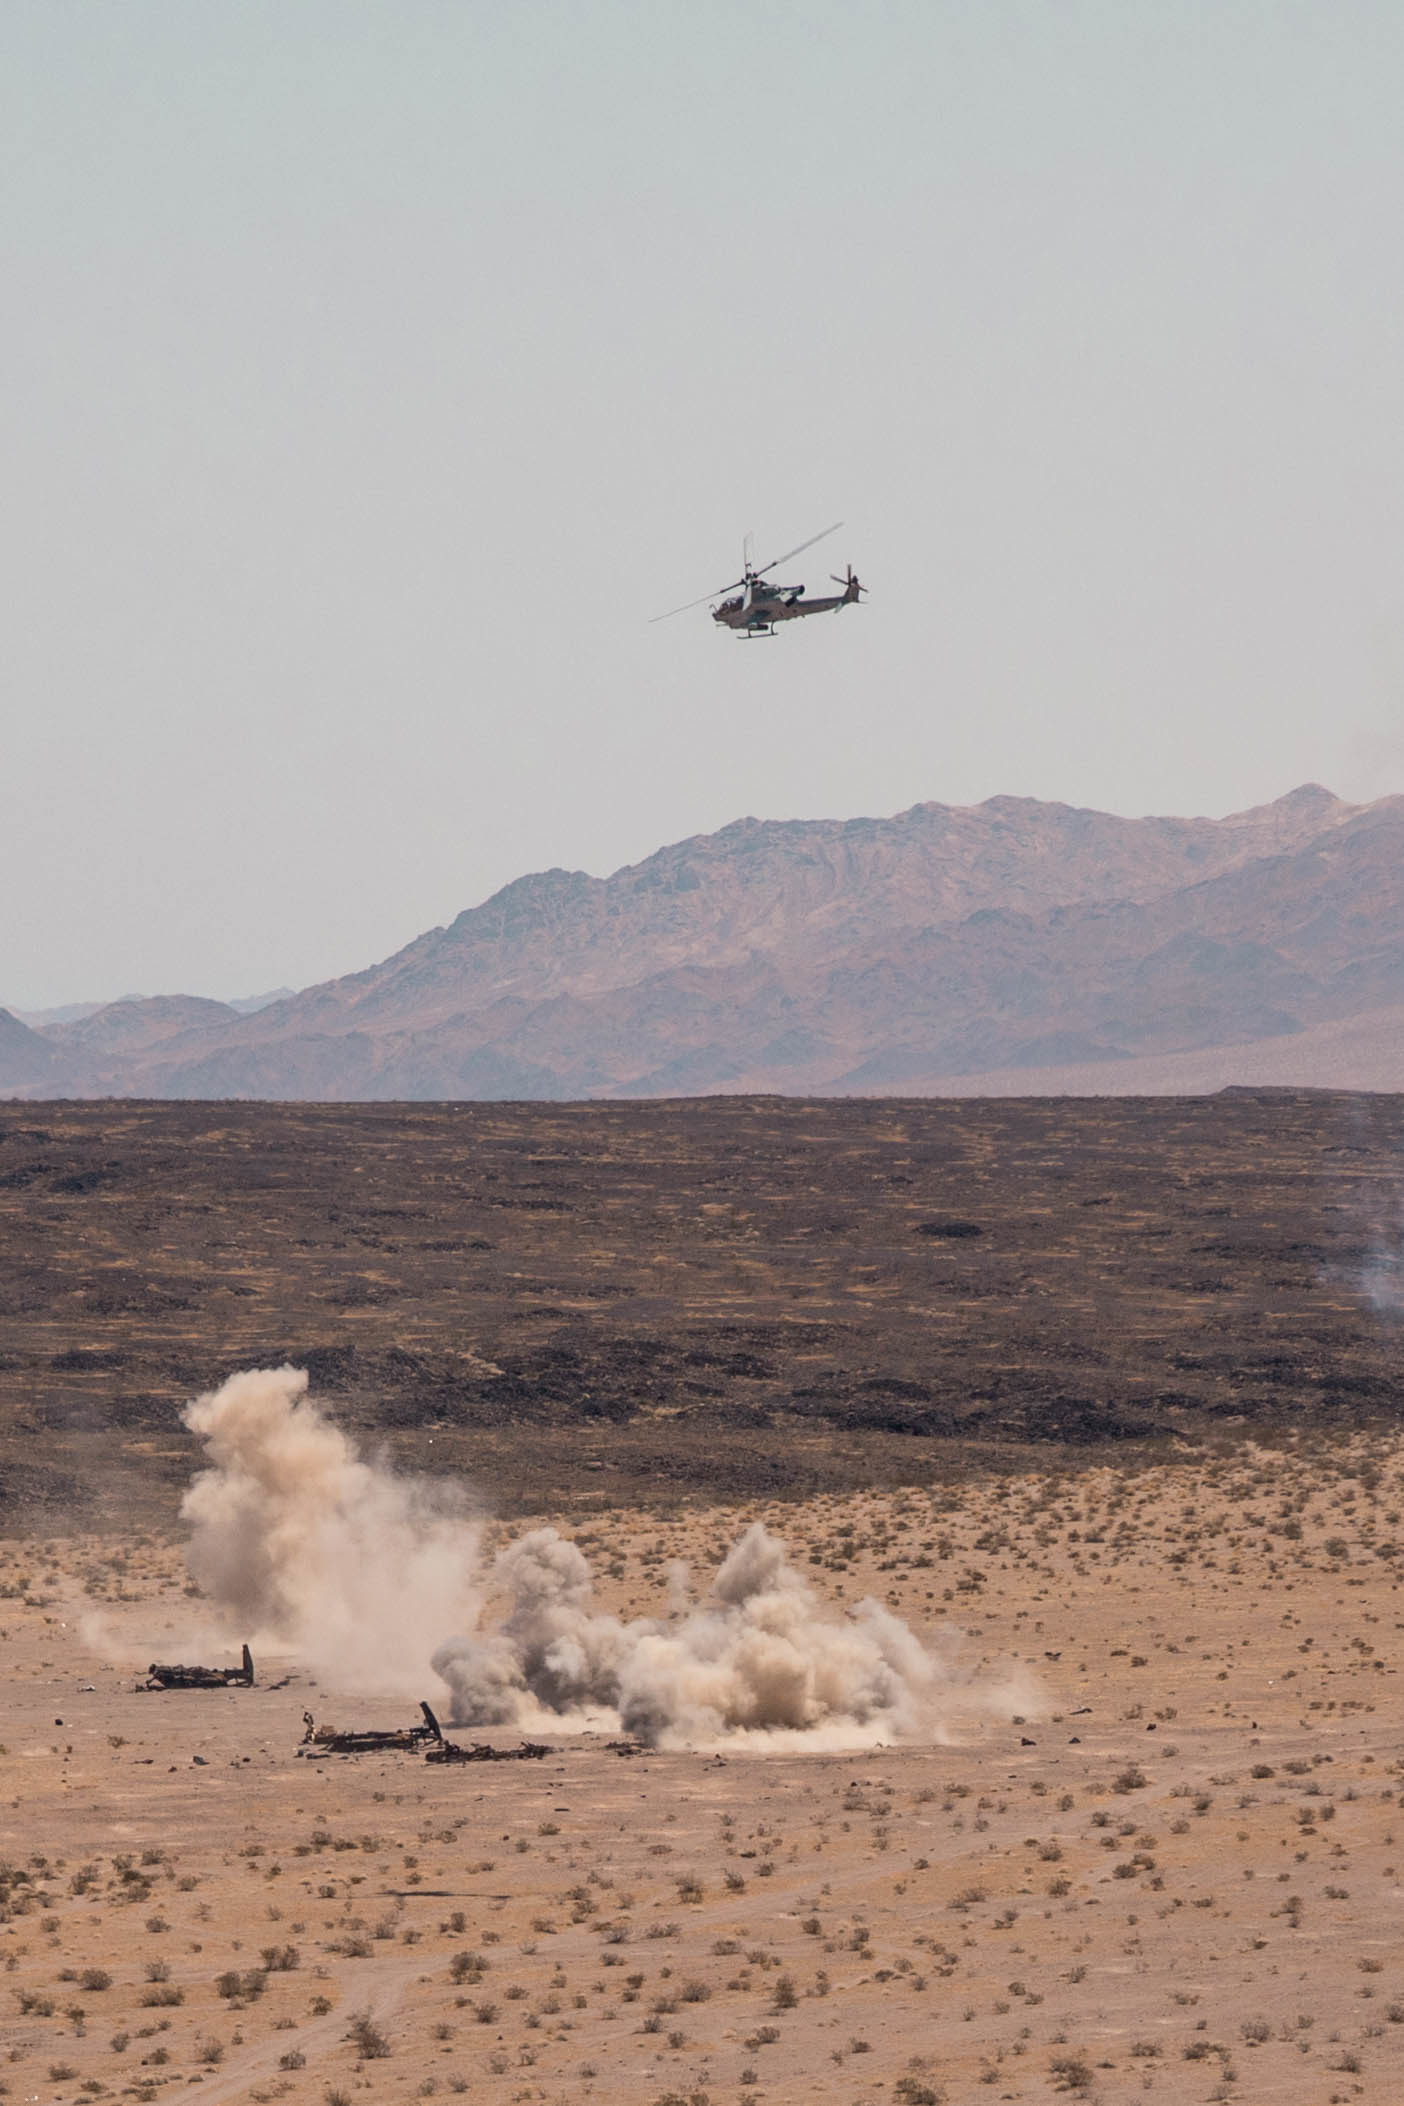 U.S. Marines with Marine Light Attack Helicopter Squadron (HMLA) 773 provide close air support for a live fire aircraft recovery during Integrated Training Exercise (ITX) 4-21 at Marine Corps Air Ground Combat Center, Twentynine Palms, California on Aug. 5, 2021. HMLA-773 is supporting Marine Air Ground Task Force 25 as part of the Aviation Combat Element during ITX, providing close air support and deep air support to the Ground Combat Element. (U.S. Marine Corps photo by Lance Cpl. David Intriago)